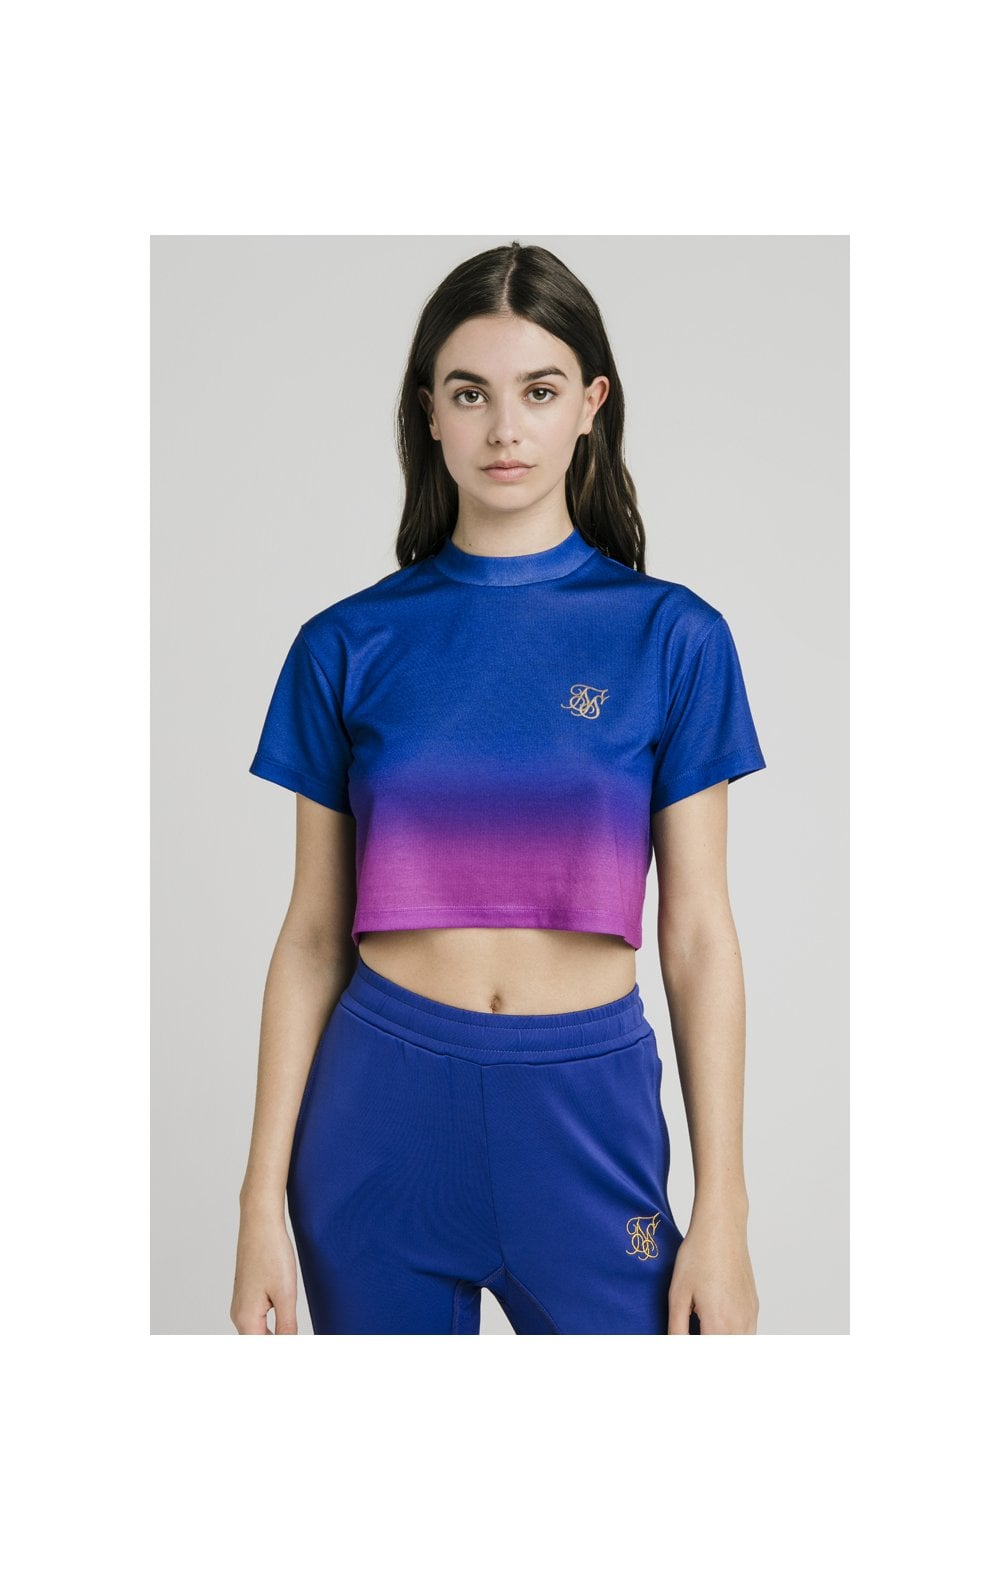 Laden Sie das Bild in den Galerie-Viewer, SikSilk T-Shirt Kurzarm Blass - Blau und Rosa (1)